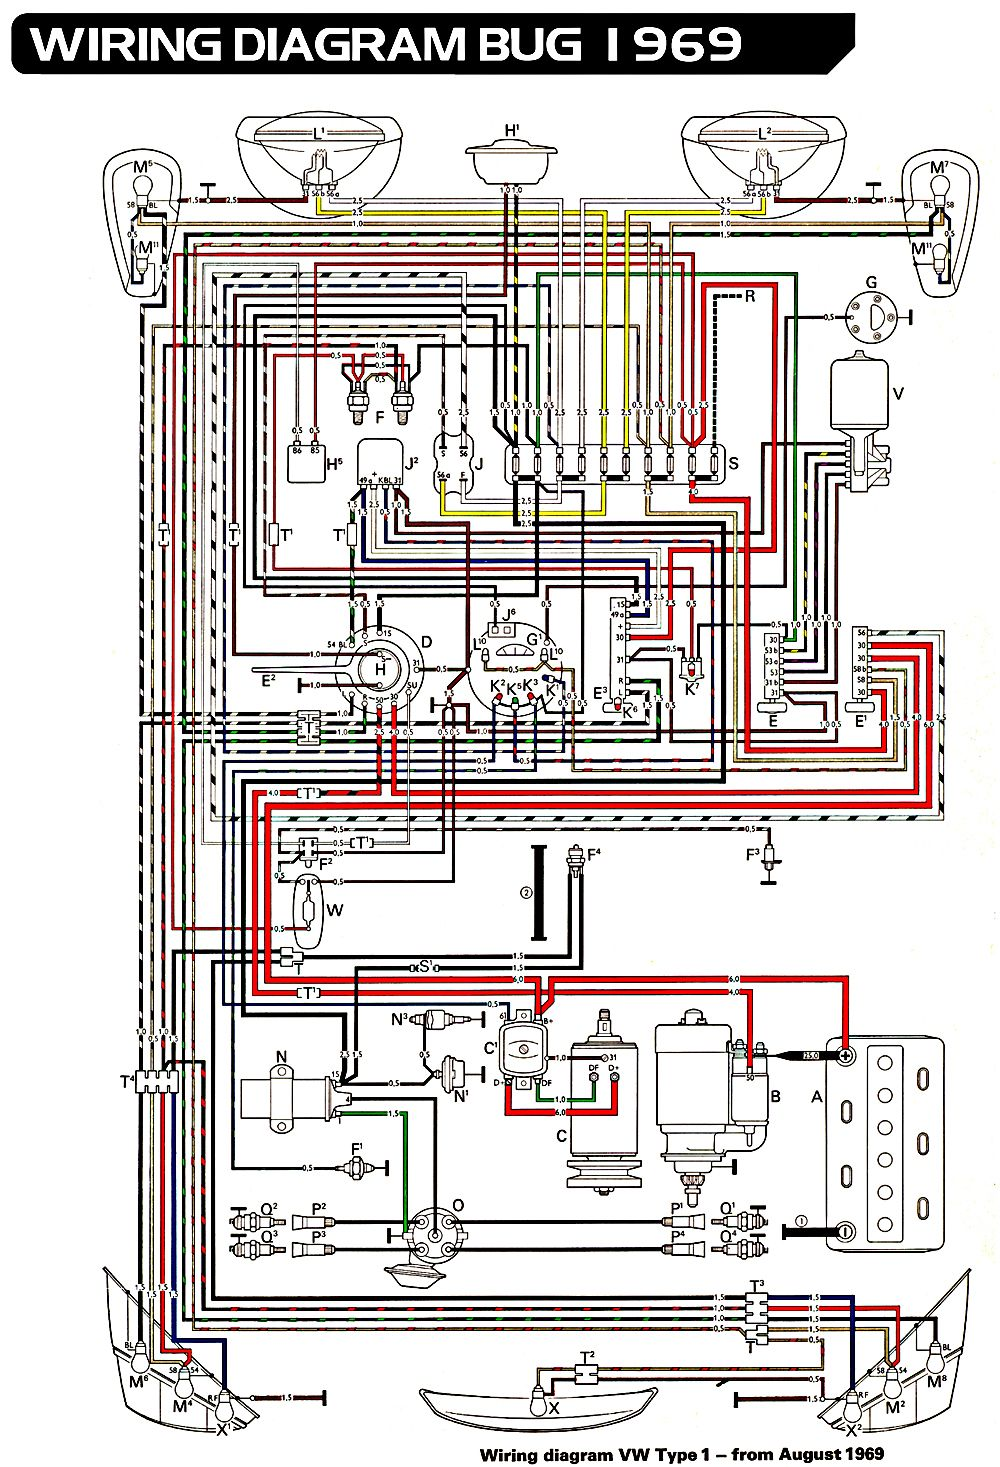 6d75c15875479254f26a32a8499d9044 69 vw bug wiring diagram 1970 vw beetle wiring \u2022 wiring diagrams 1969 vw bug wiring harness at reclaimingppi.co